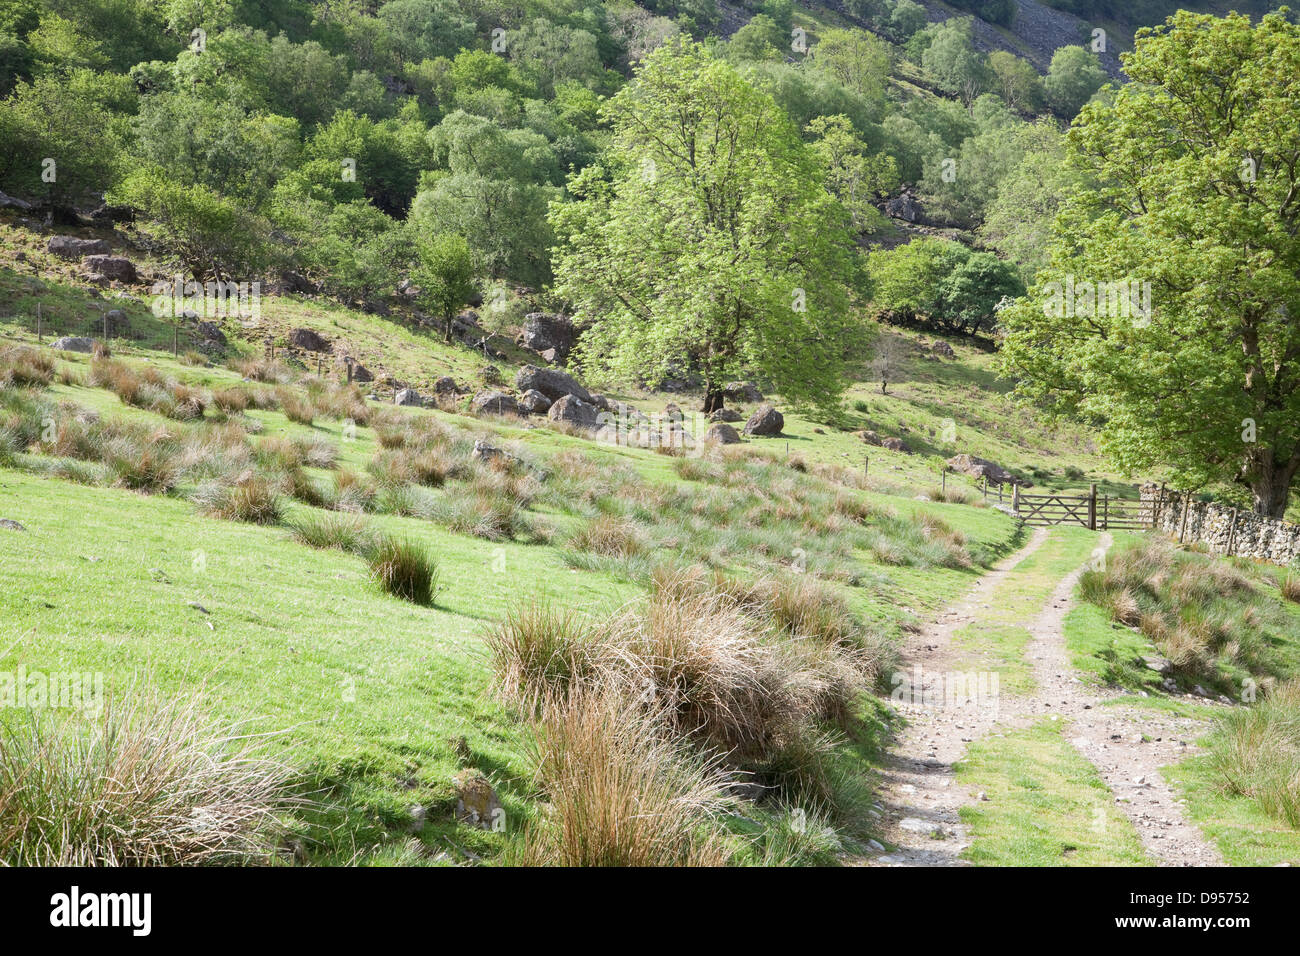 The Allerdale Ramble path in Borrowdale - Stock Image